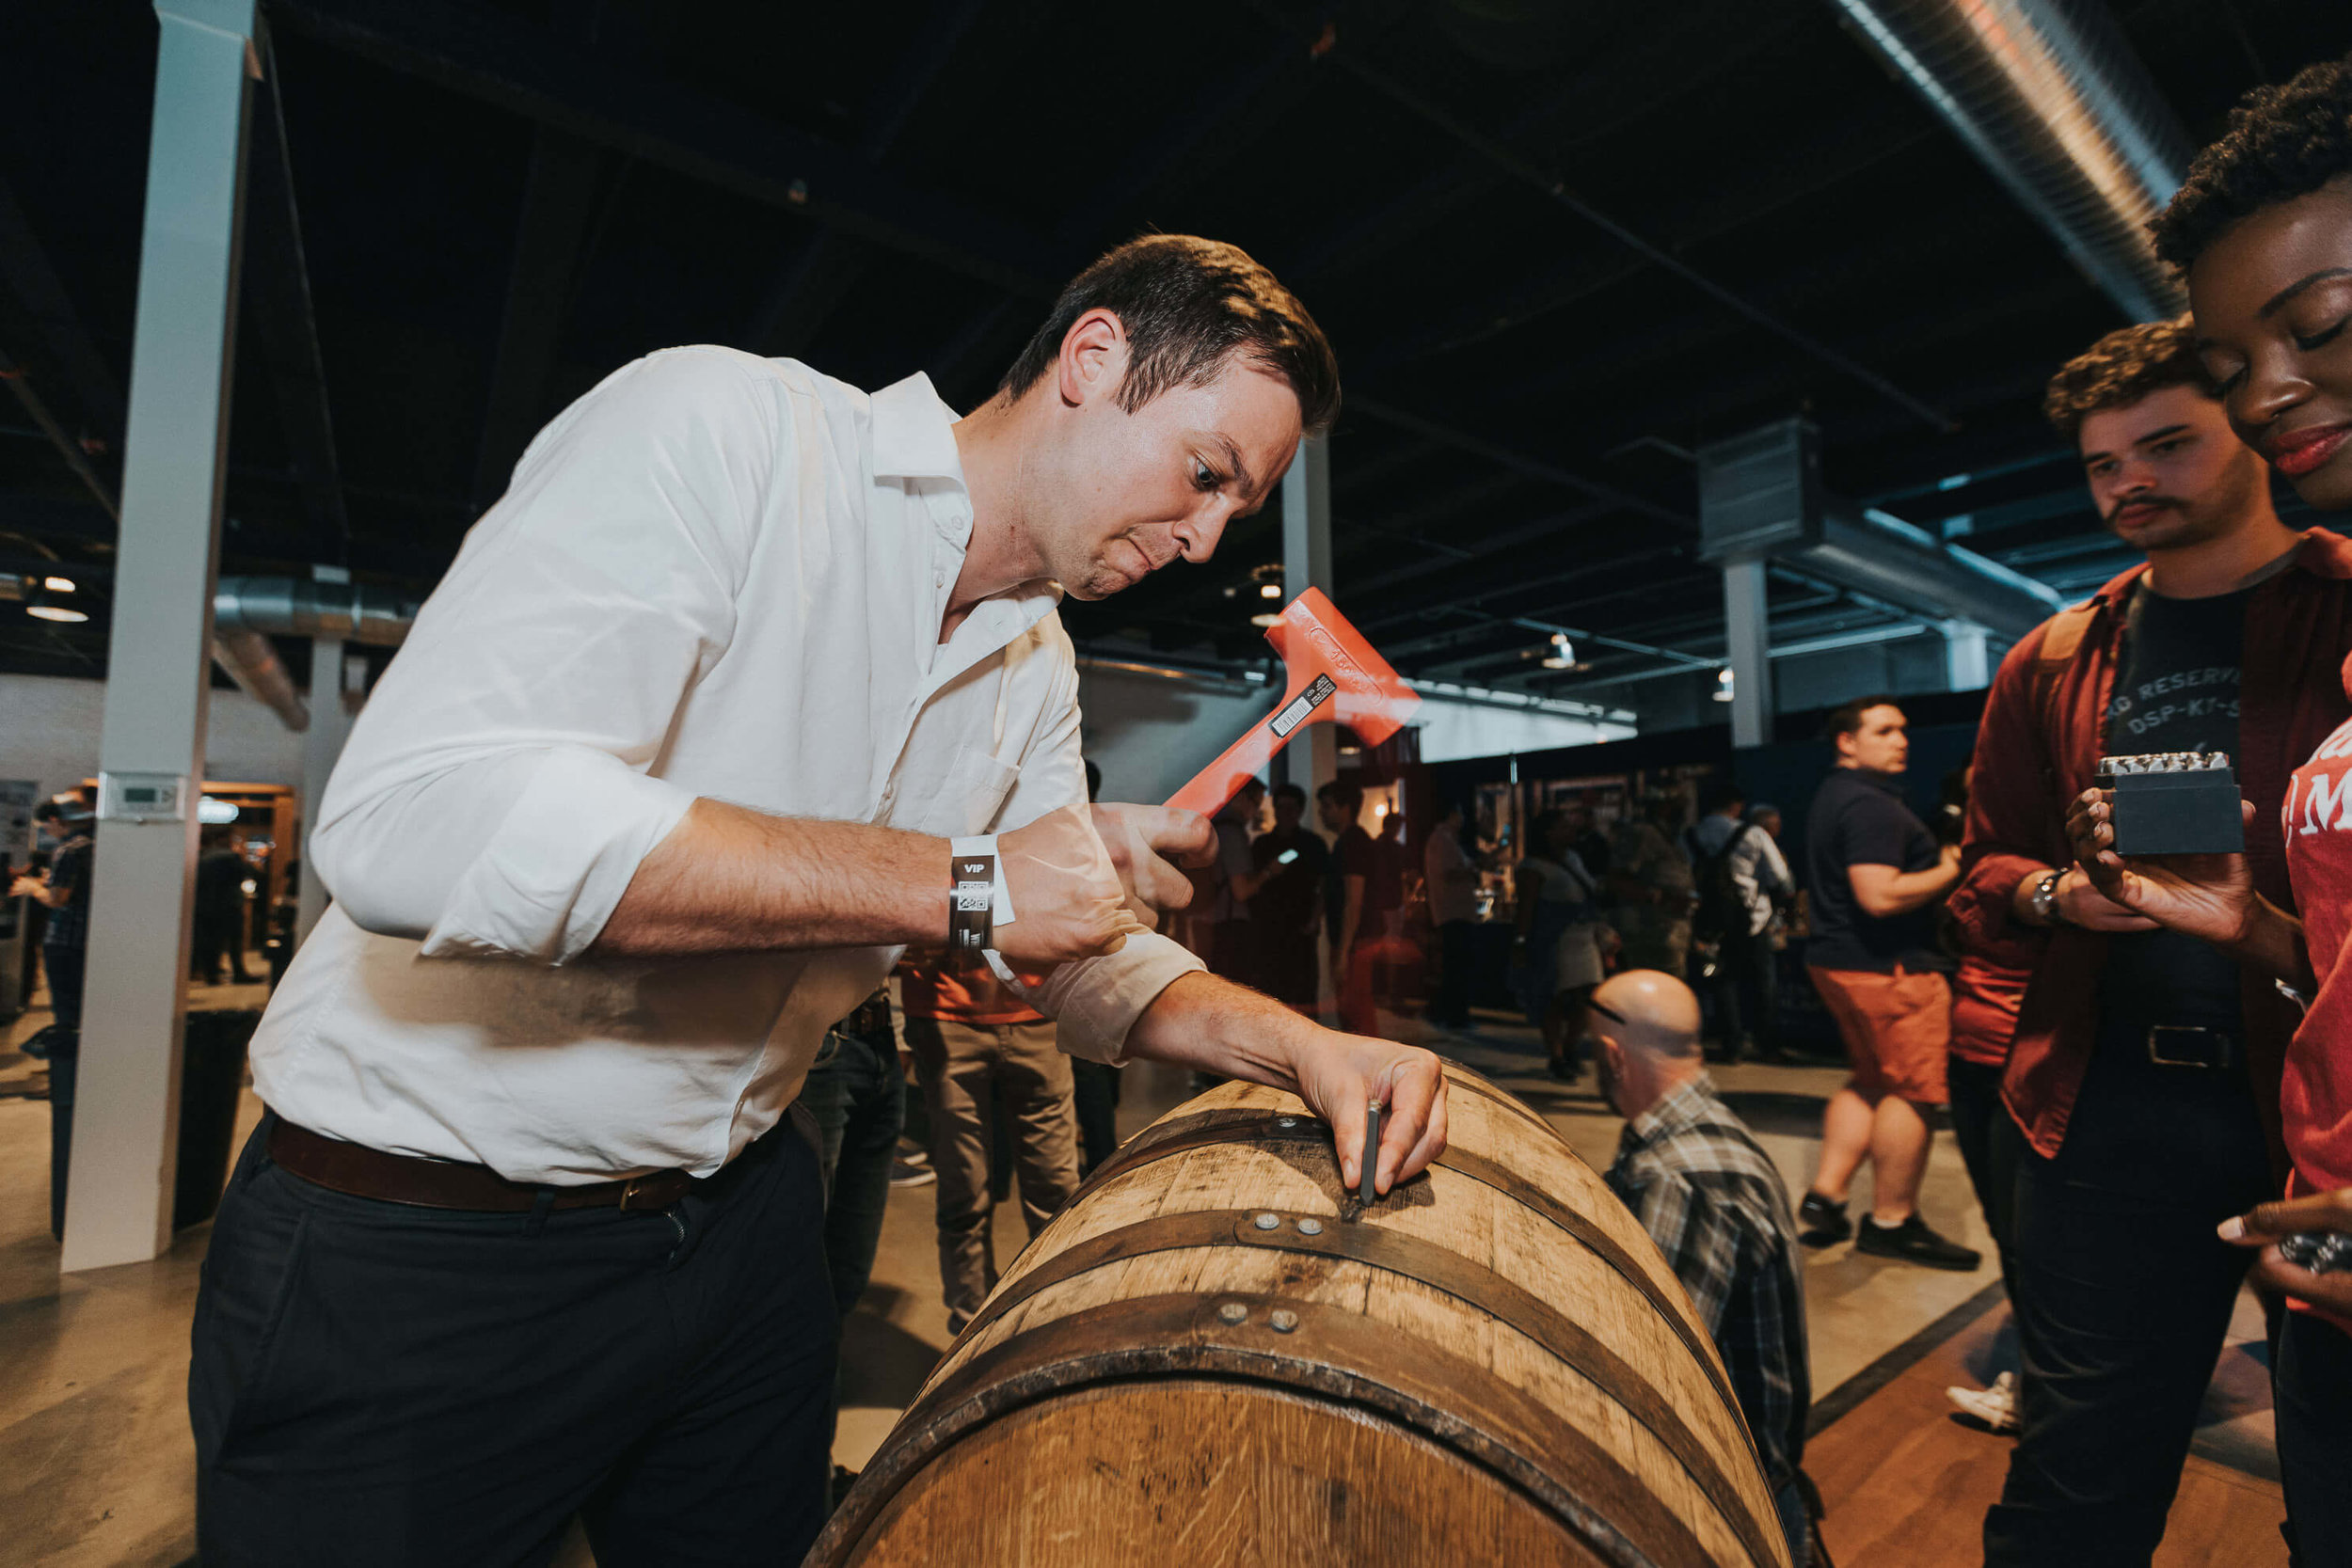 man hammering nail into barrel at whisky event